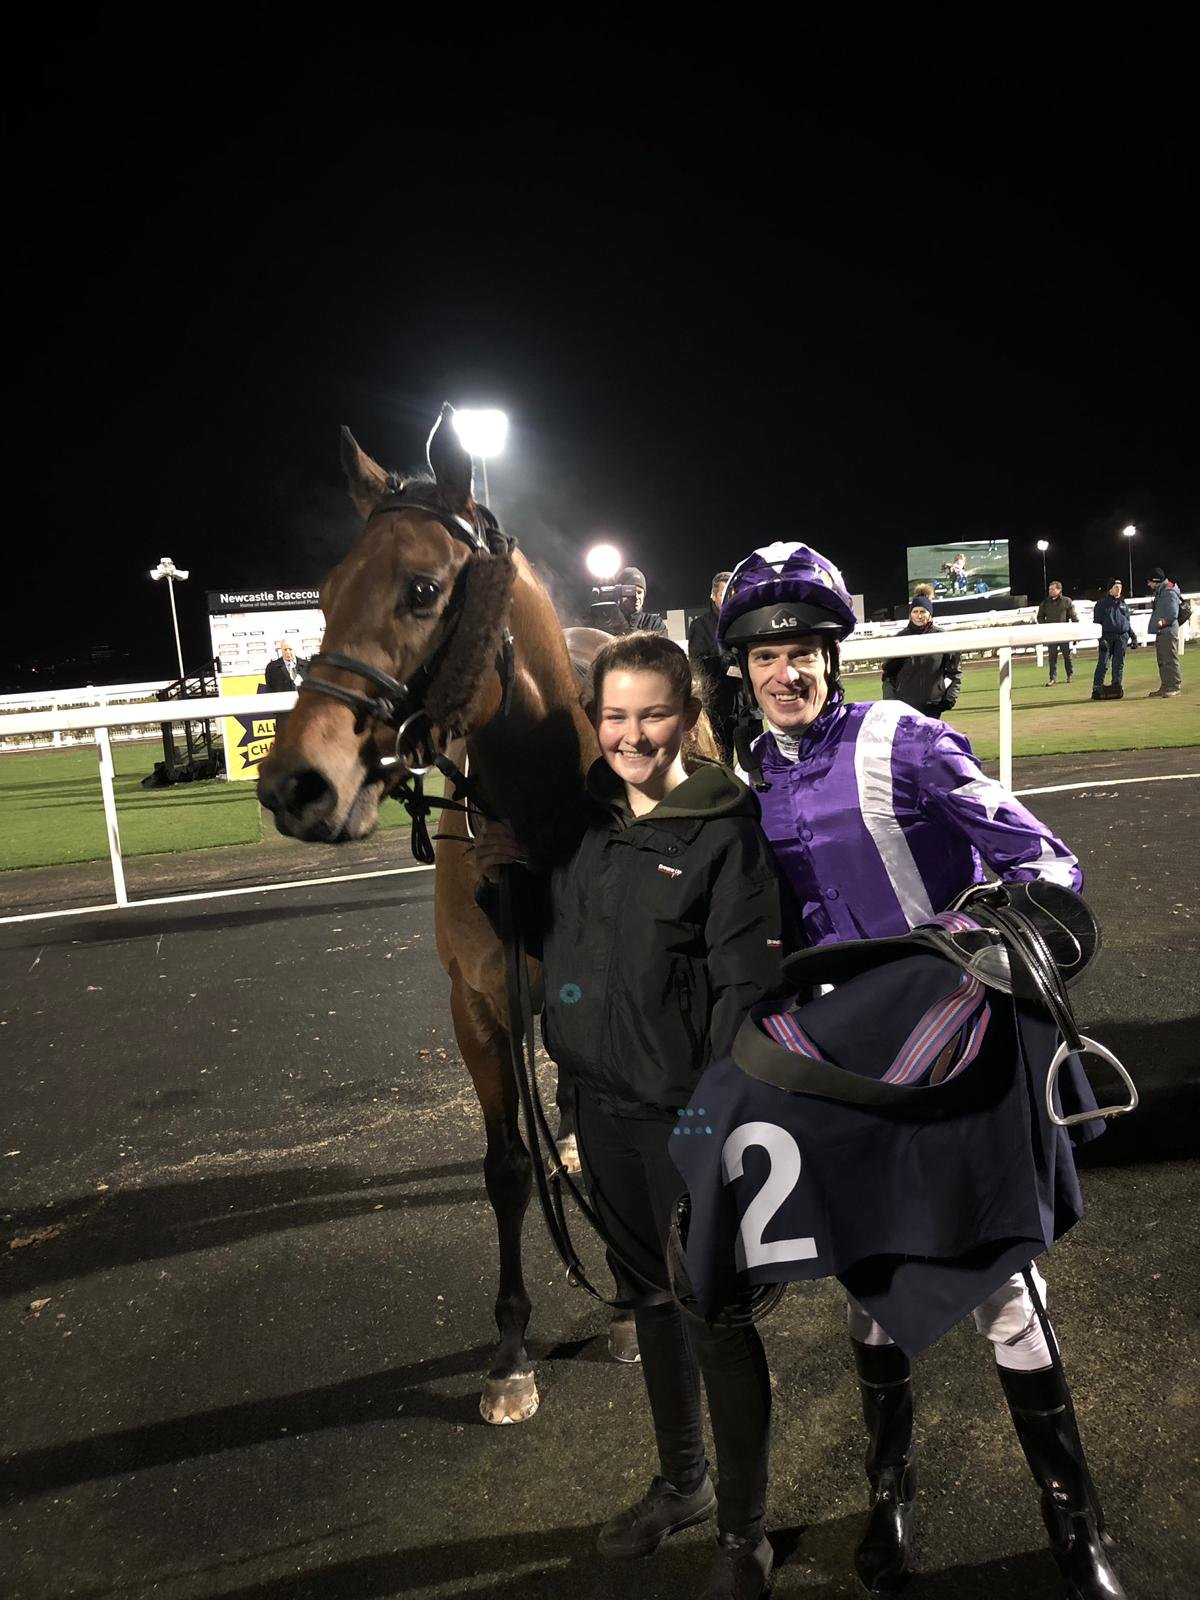 f1284acb39b He was clear entering the final furlong and stayed on strongly to win by two-and-three-quarter-lengths.  He looks a nice prospect this year for owner Alan ...